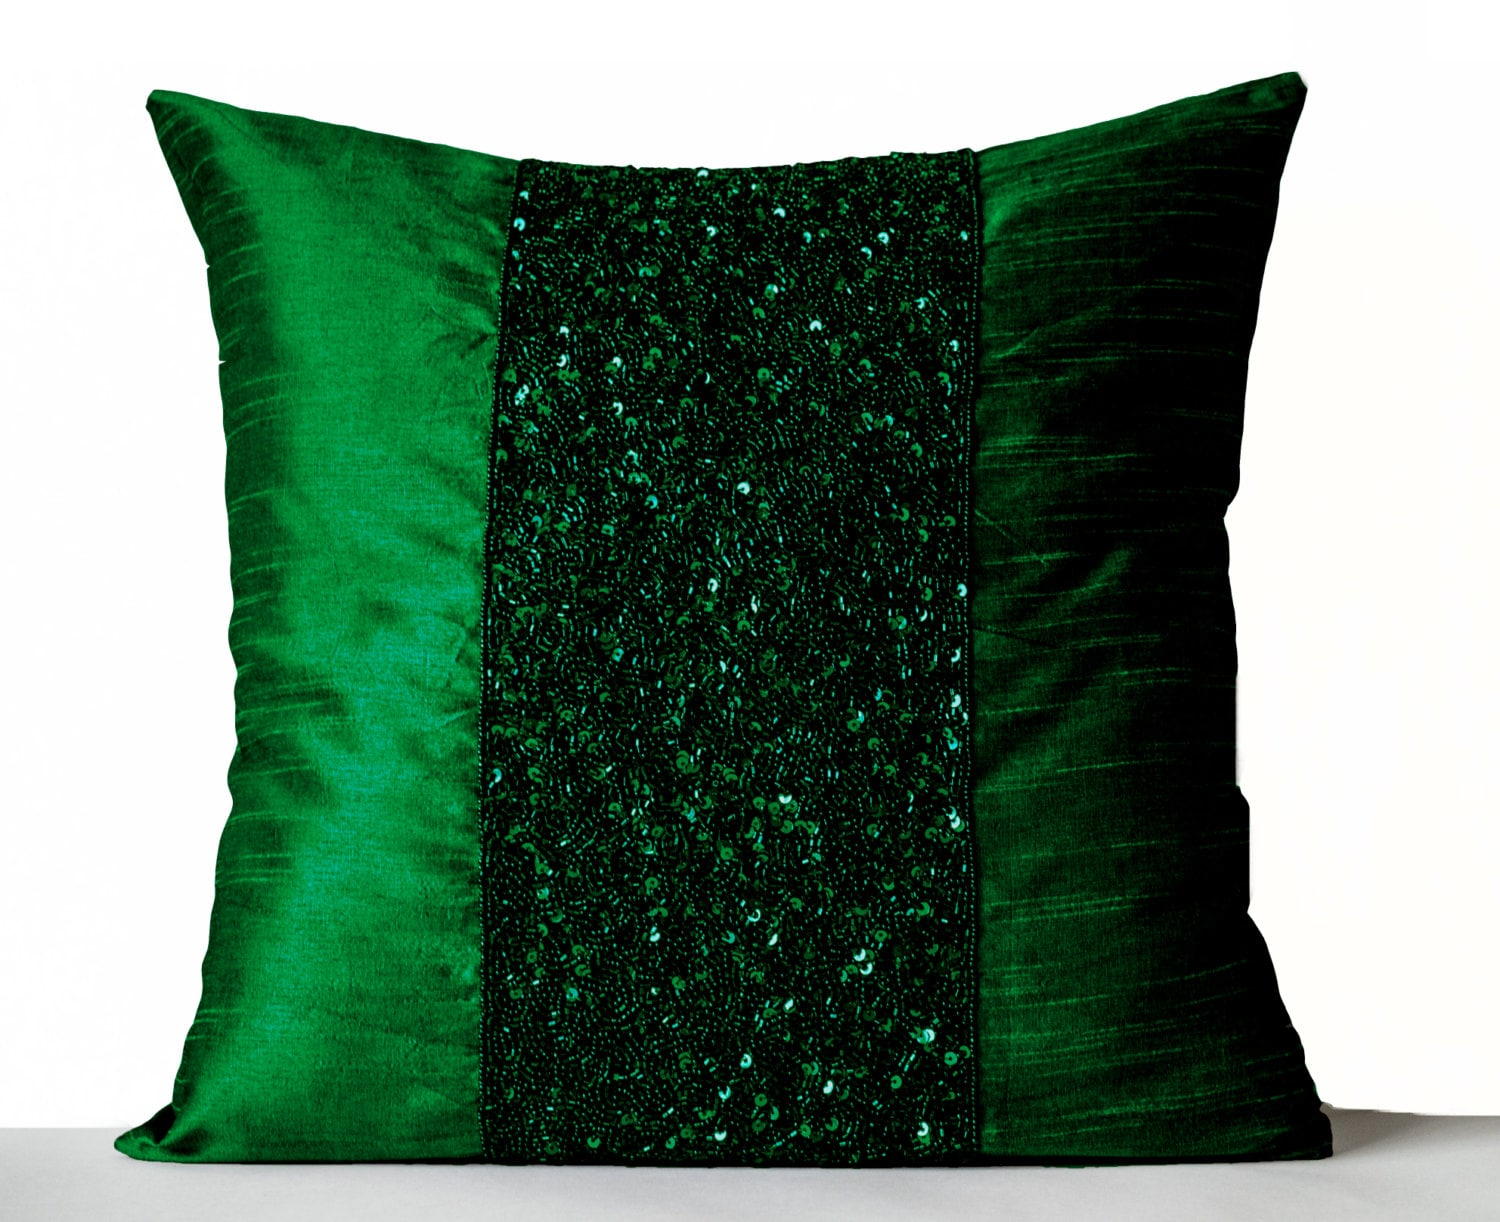 Decorative Pillows For Bed Green : Pillow Cover Throw Pillows Bed Decorative Pillows Couch